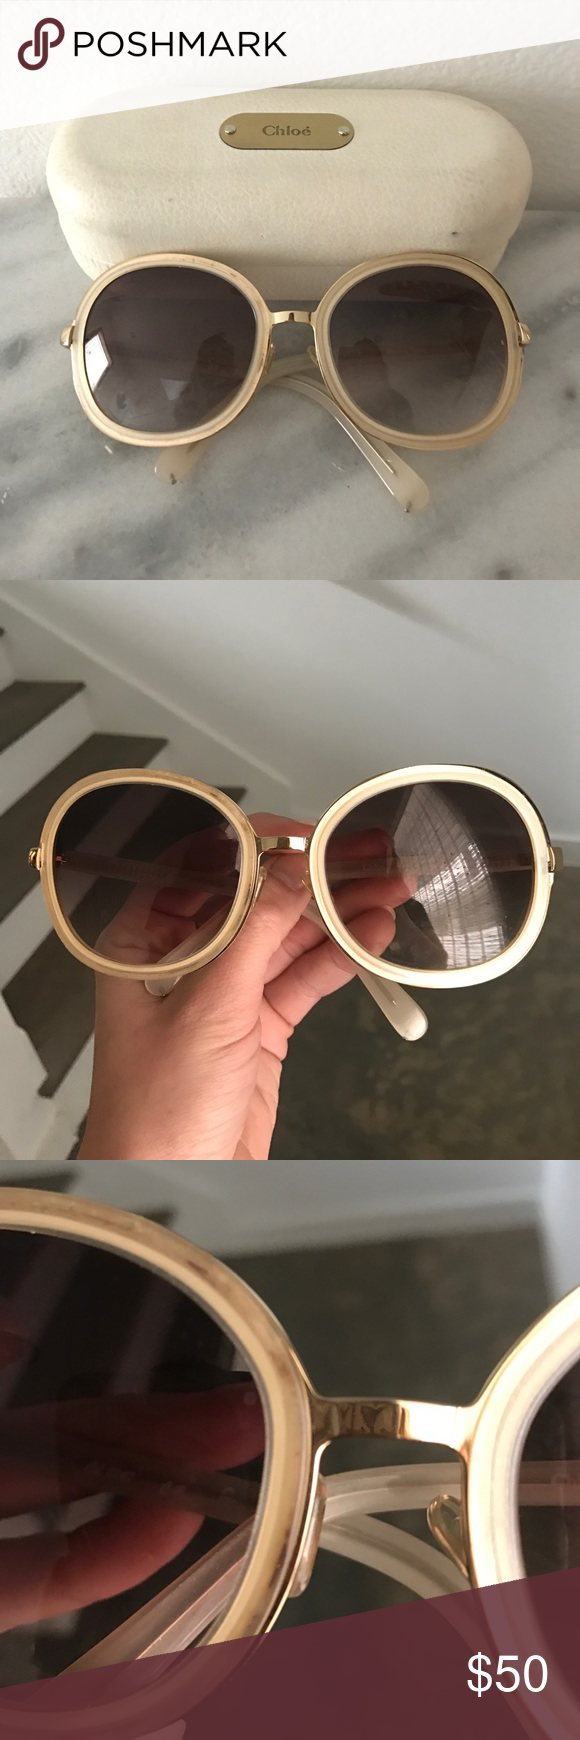 295136dbae1c Chloe round Nicole Richie sunglasses white gold Round 70s style Chloe  authentic sunglasses. Some signs of wear. Oversized. Comes with case Chloe  Accessories ...